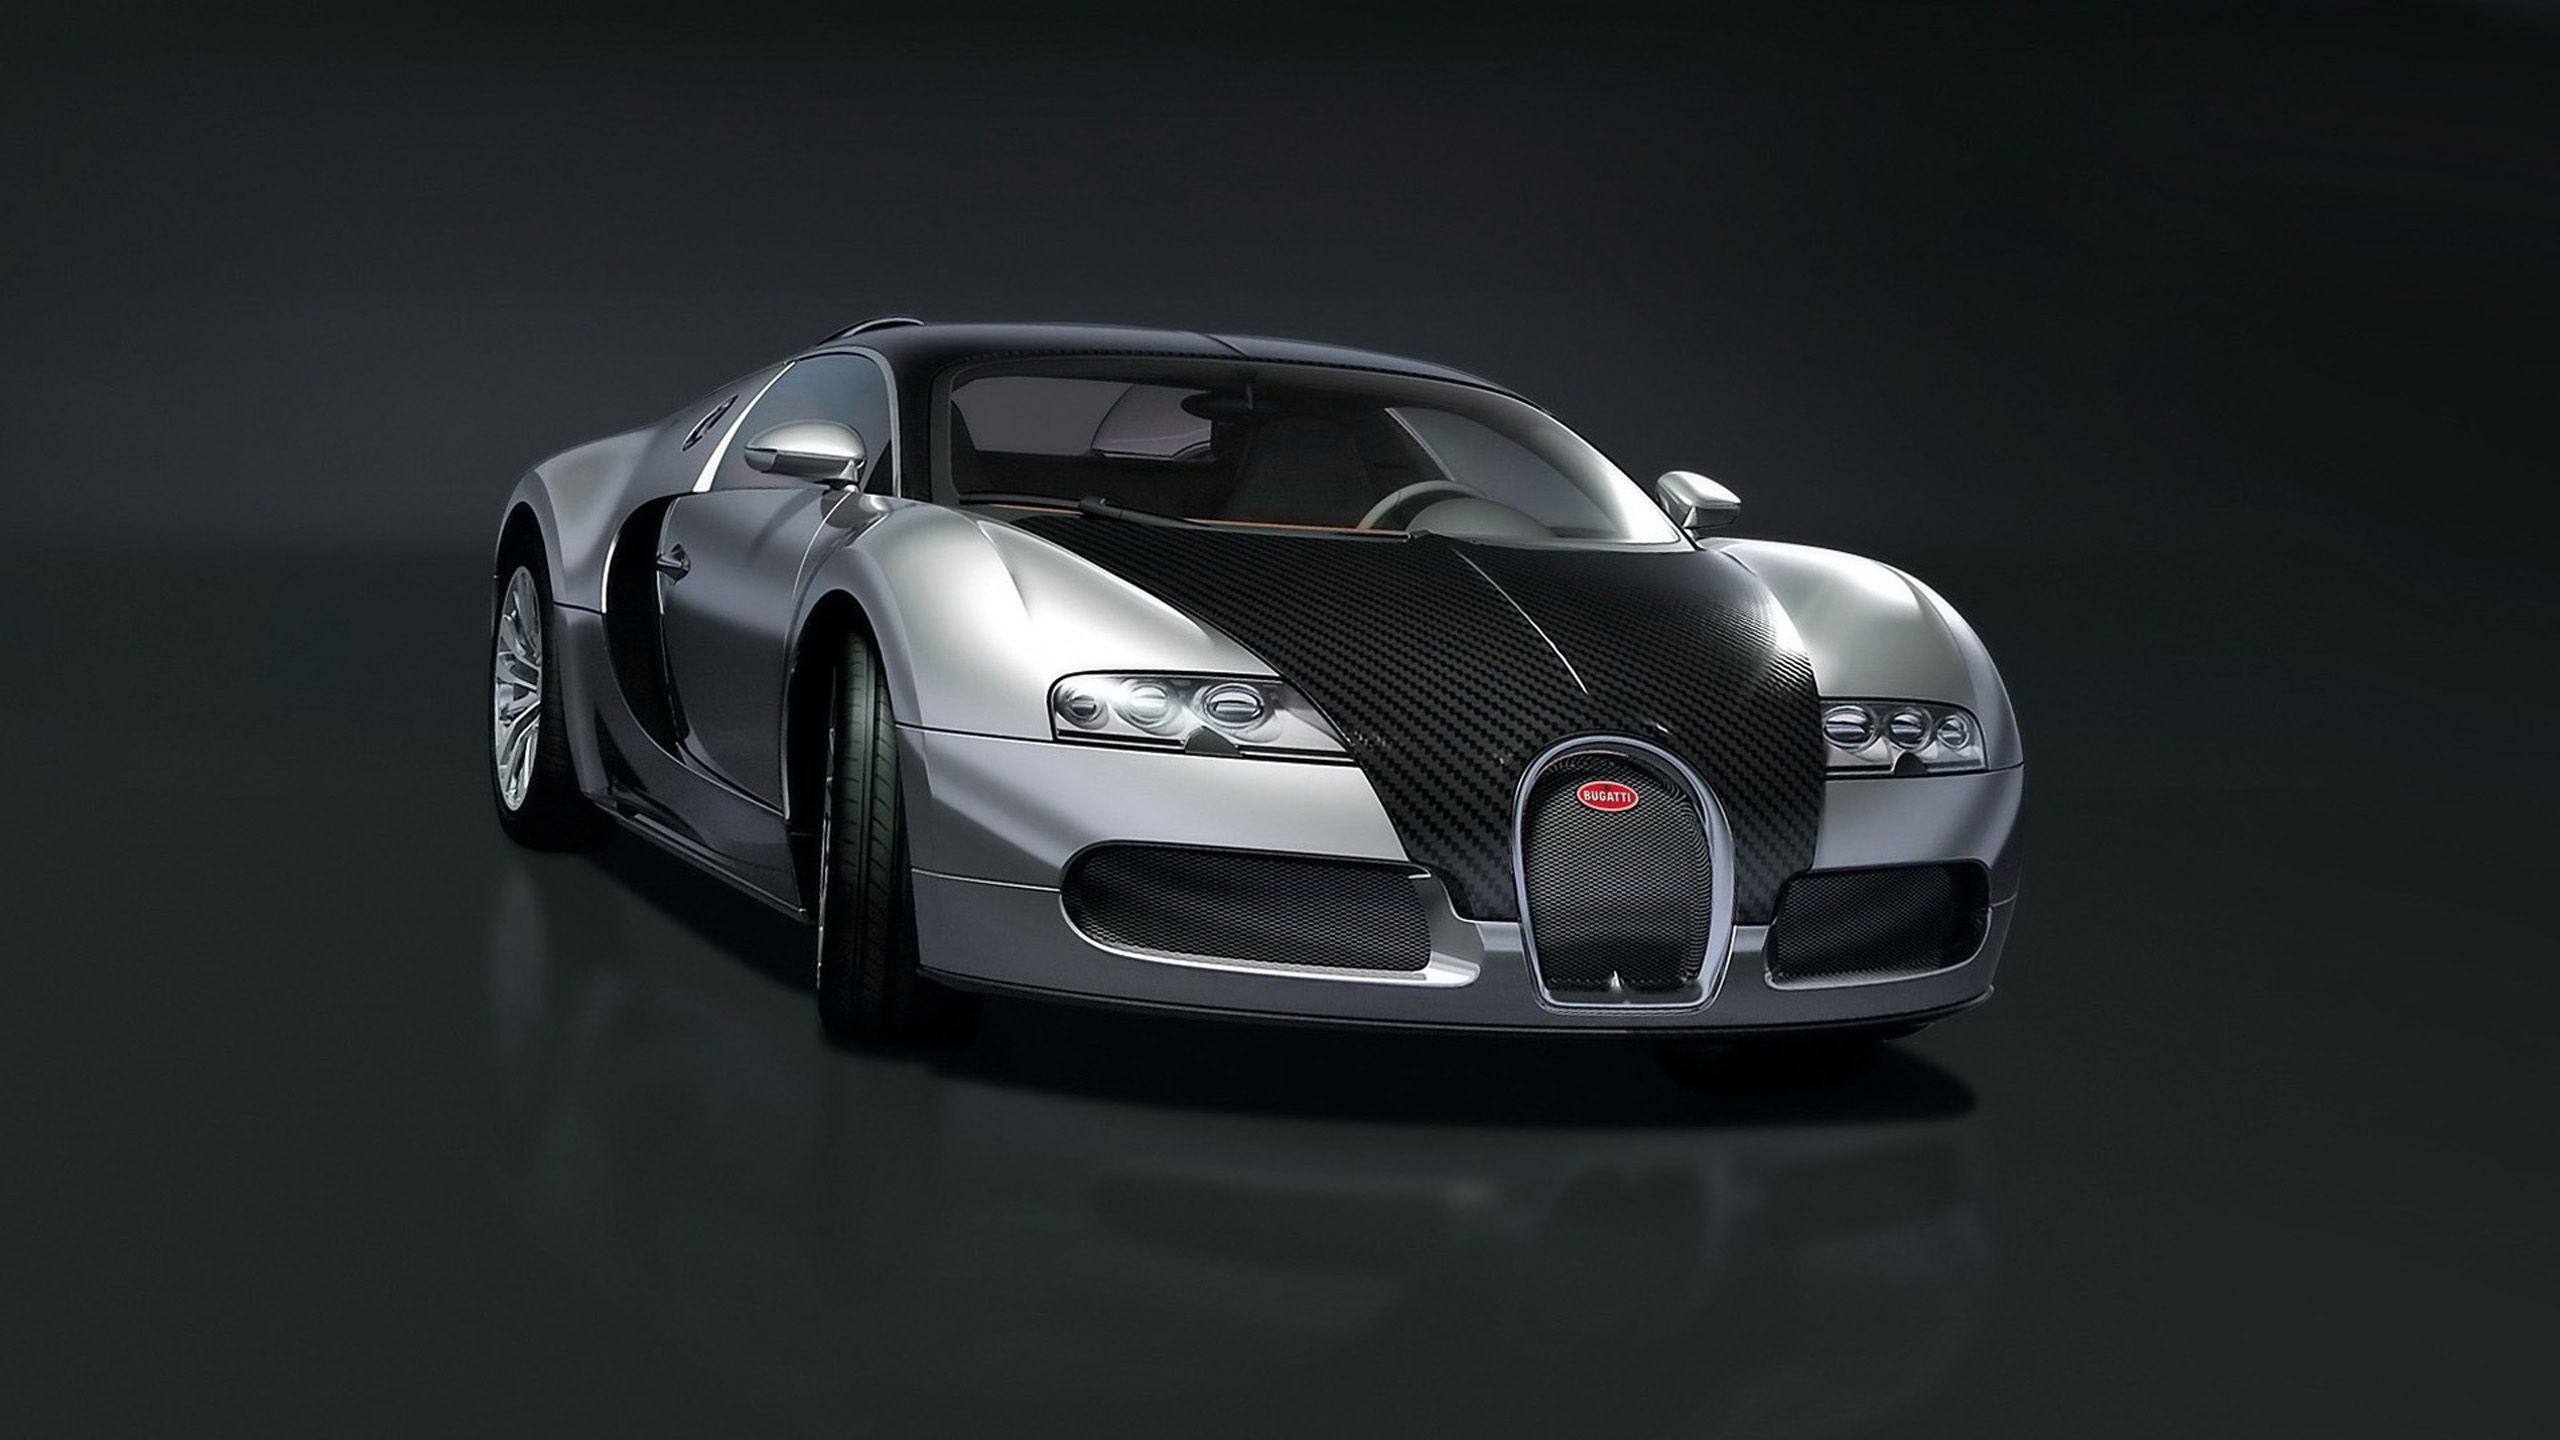 Bugatti Logo Wallpapers Group 1920x1200 34